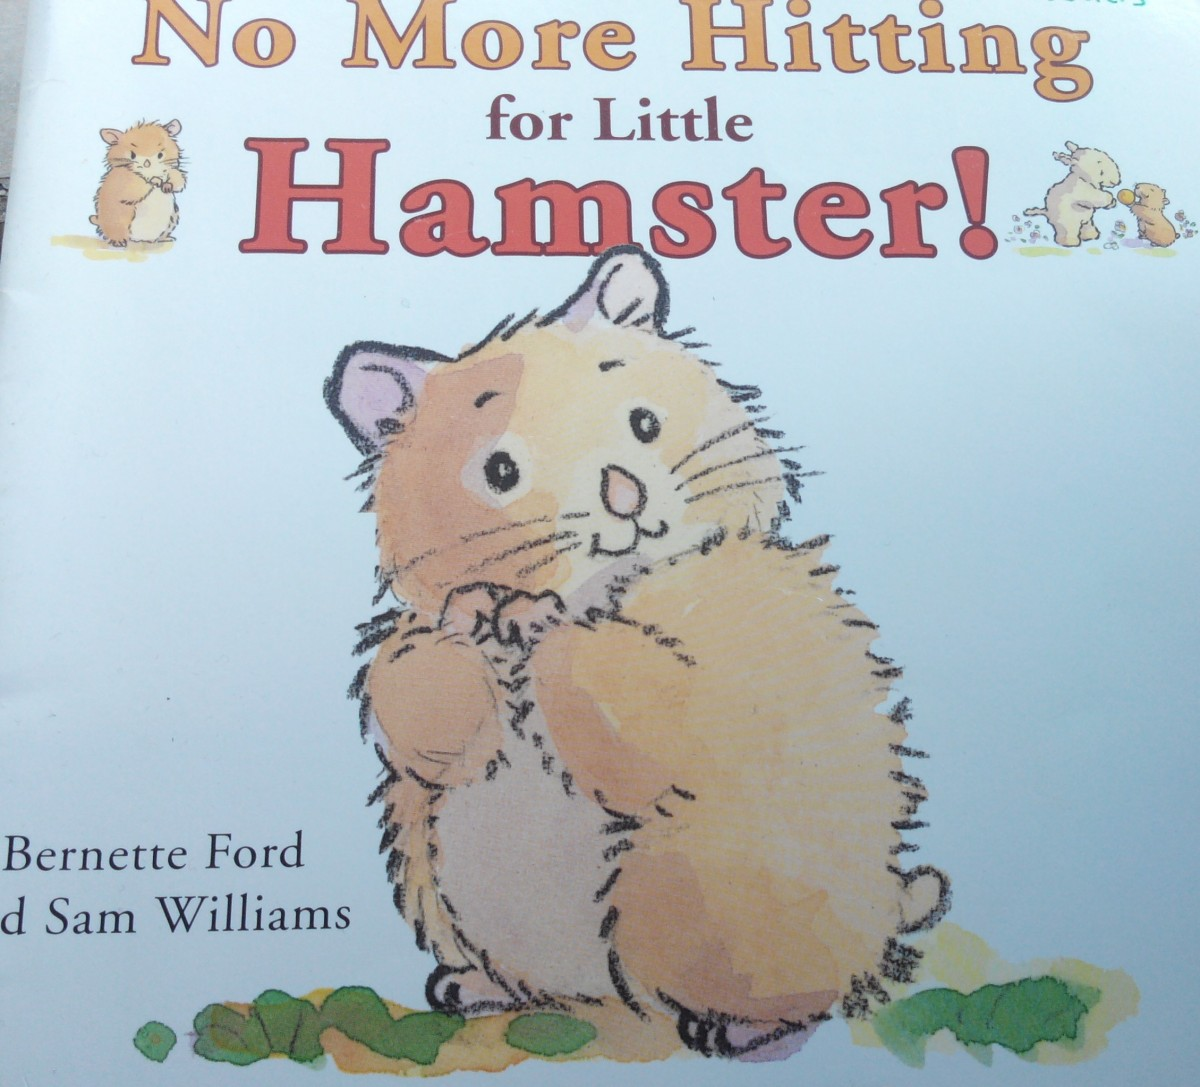 Histoire enfantine anglaise-No More Hitting for Little Hamster!(Dès 2 ans)